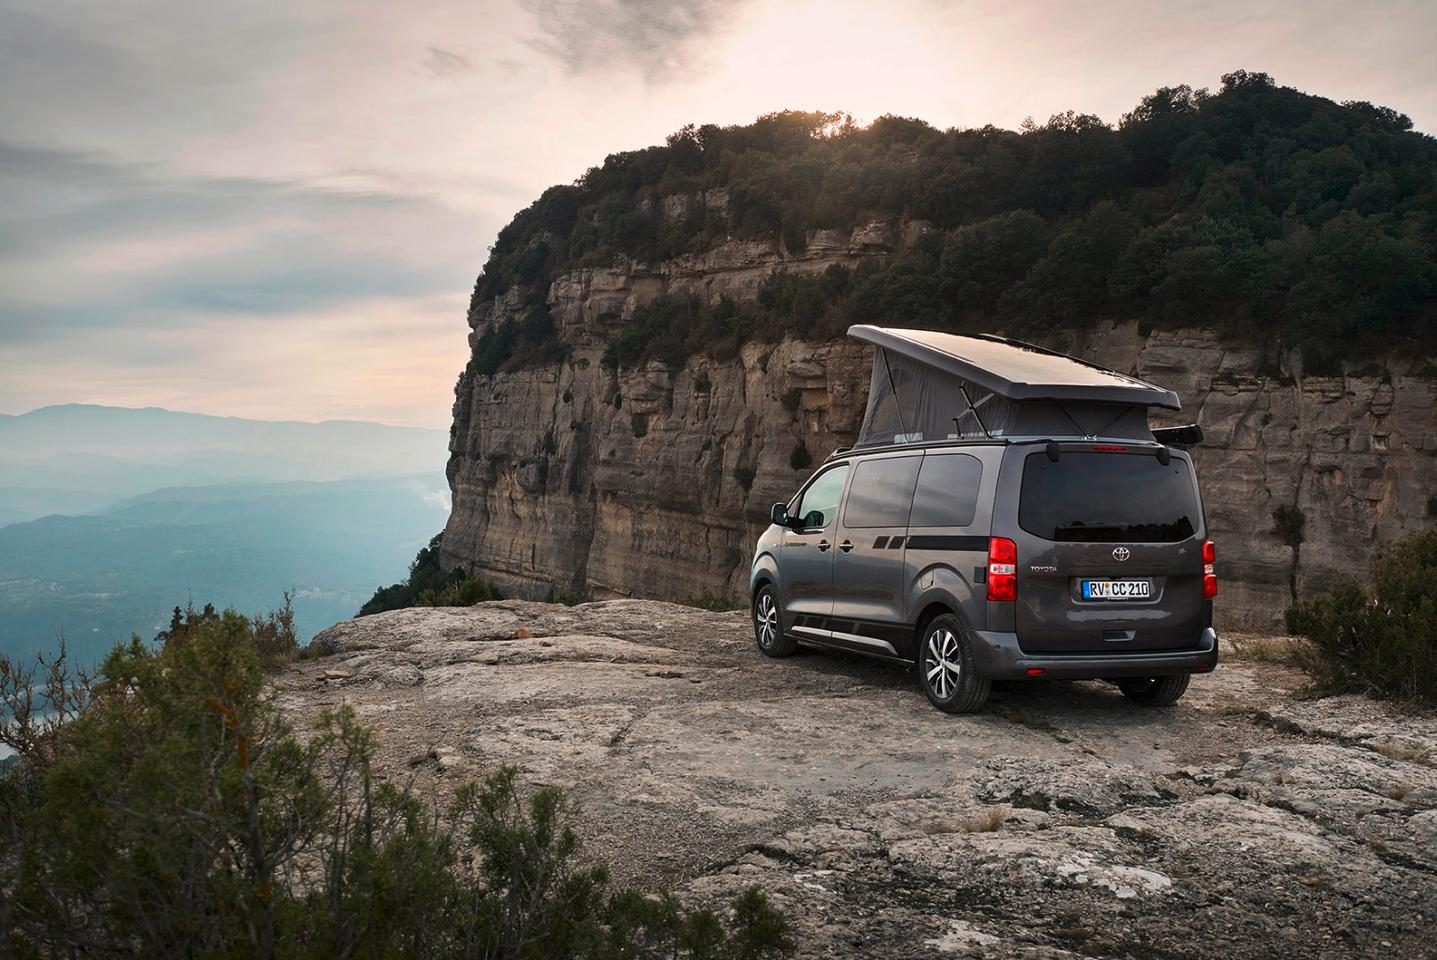 The Crosscamp is built to enable theperfect escape from city life